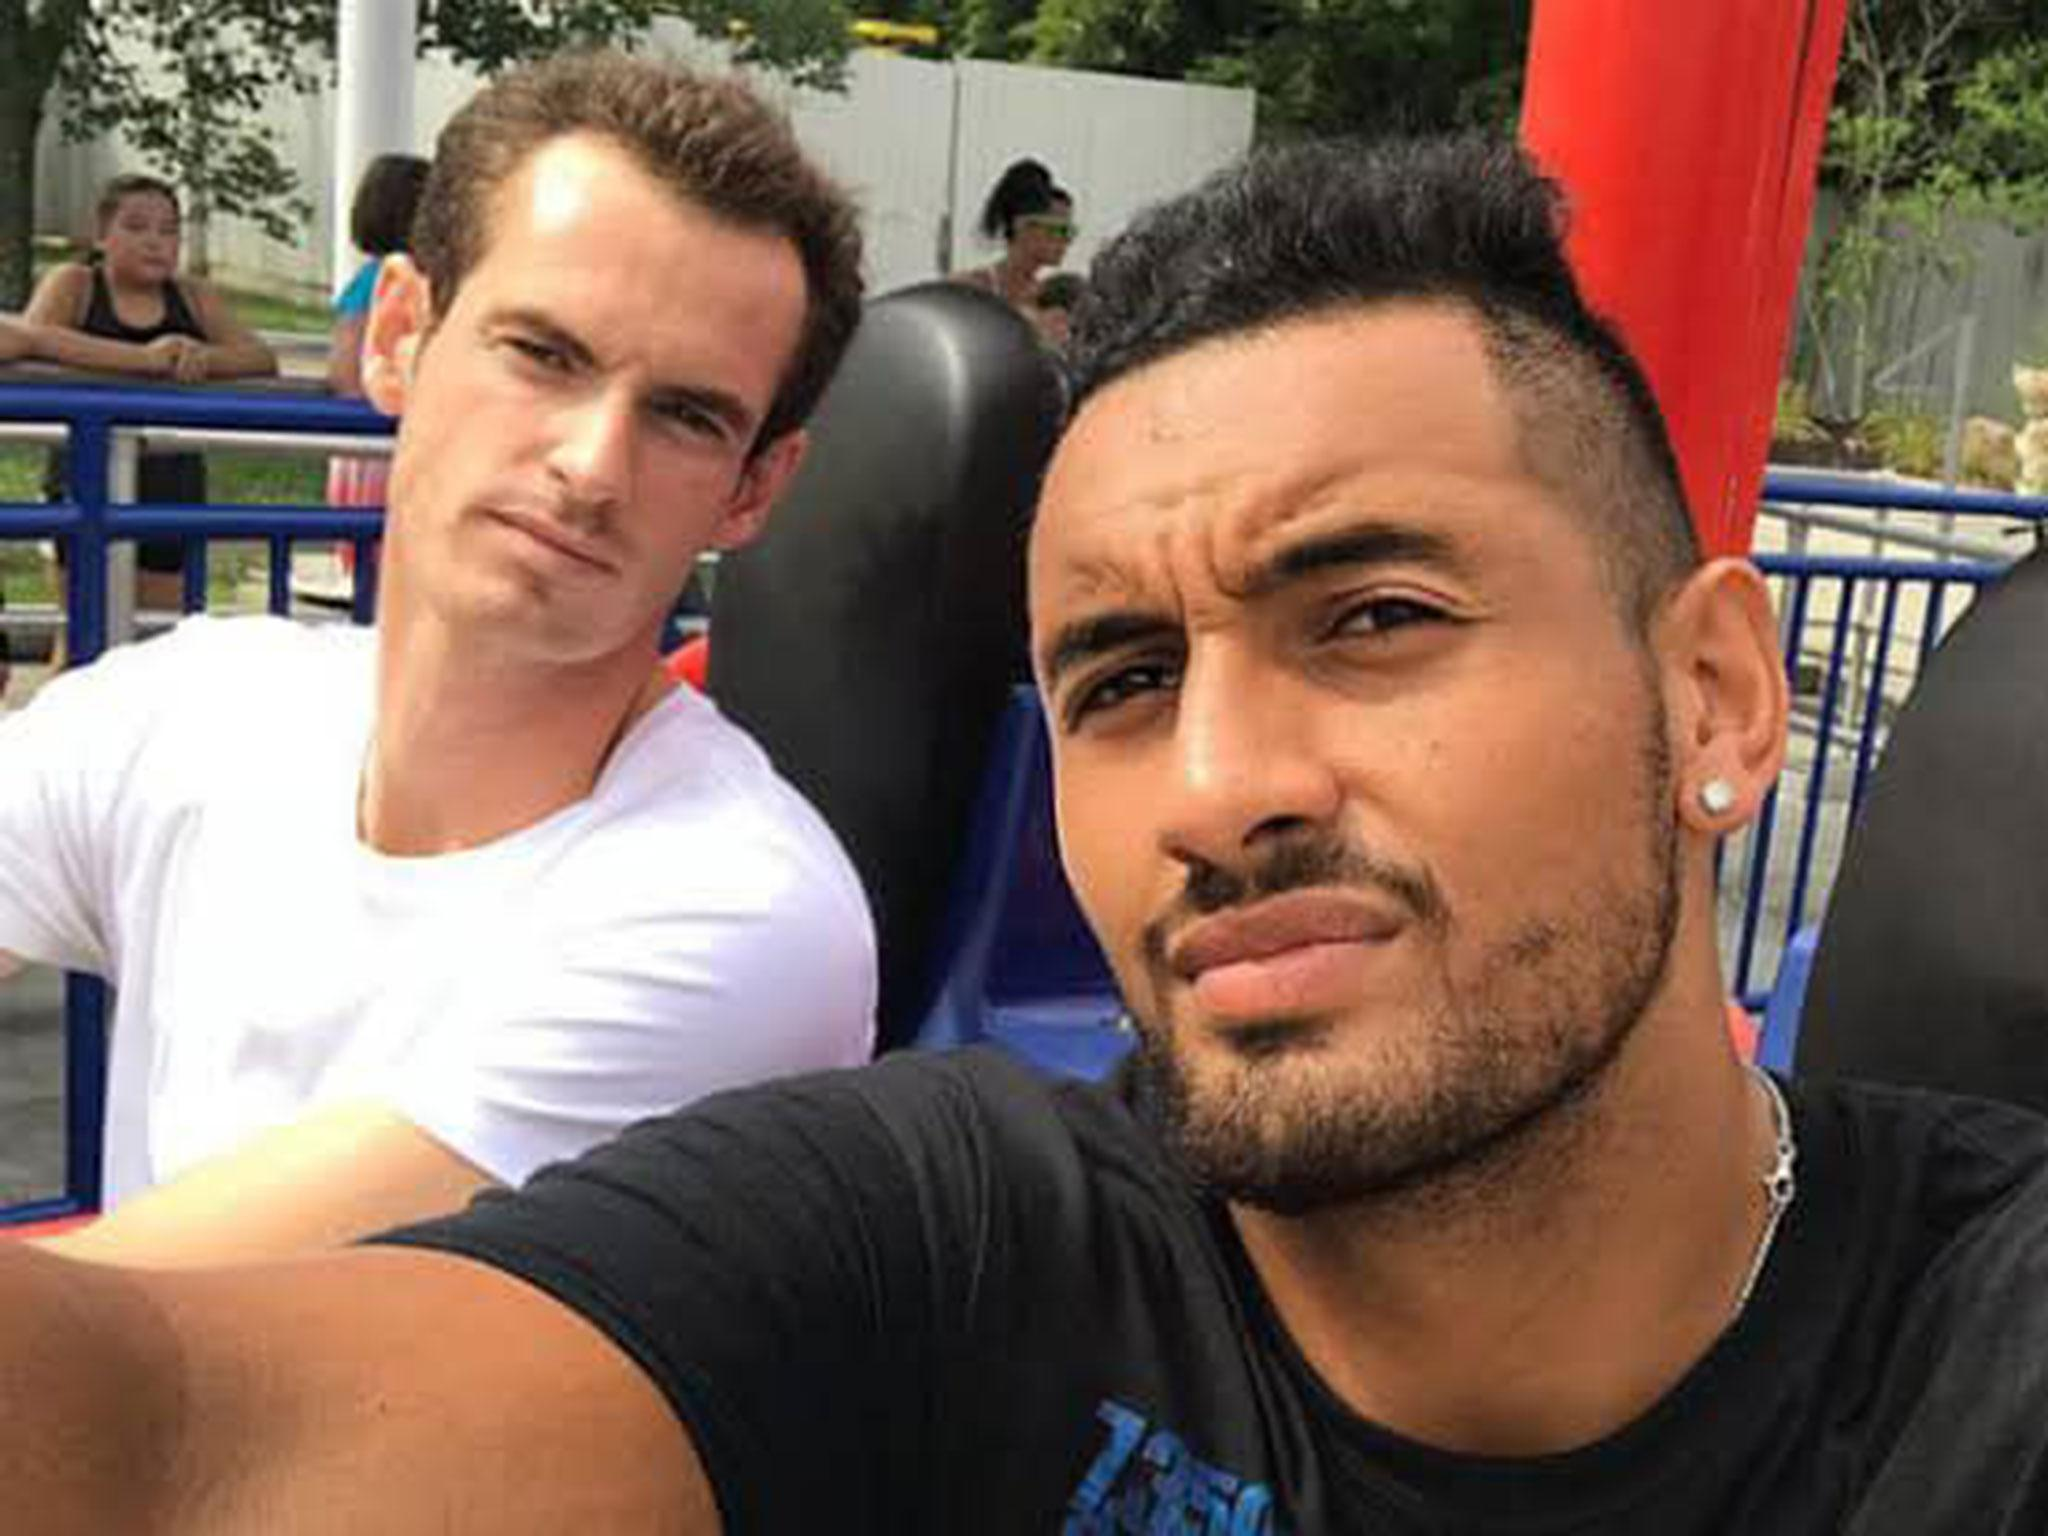 Andy Murray retires: Nick Kyrgios posts touching and personal message to close friend after announcement